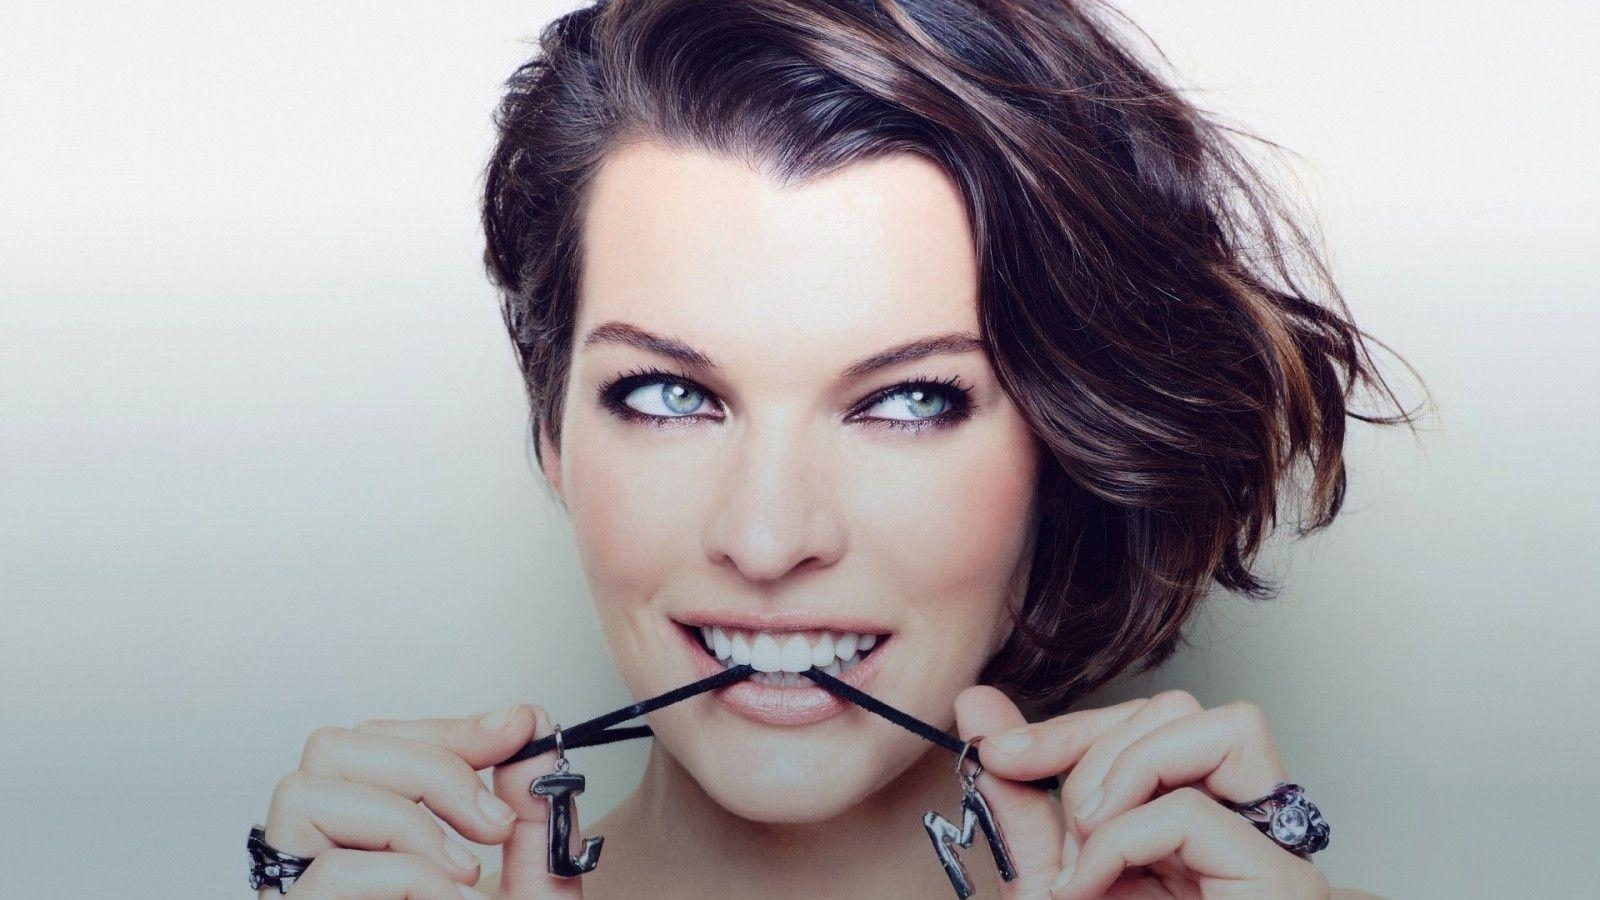 milla jovovich hd wallpapers - wallpaper cave